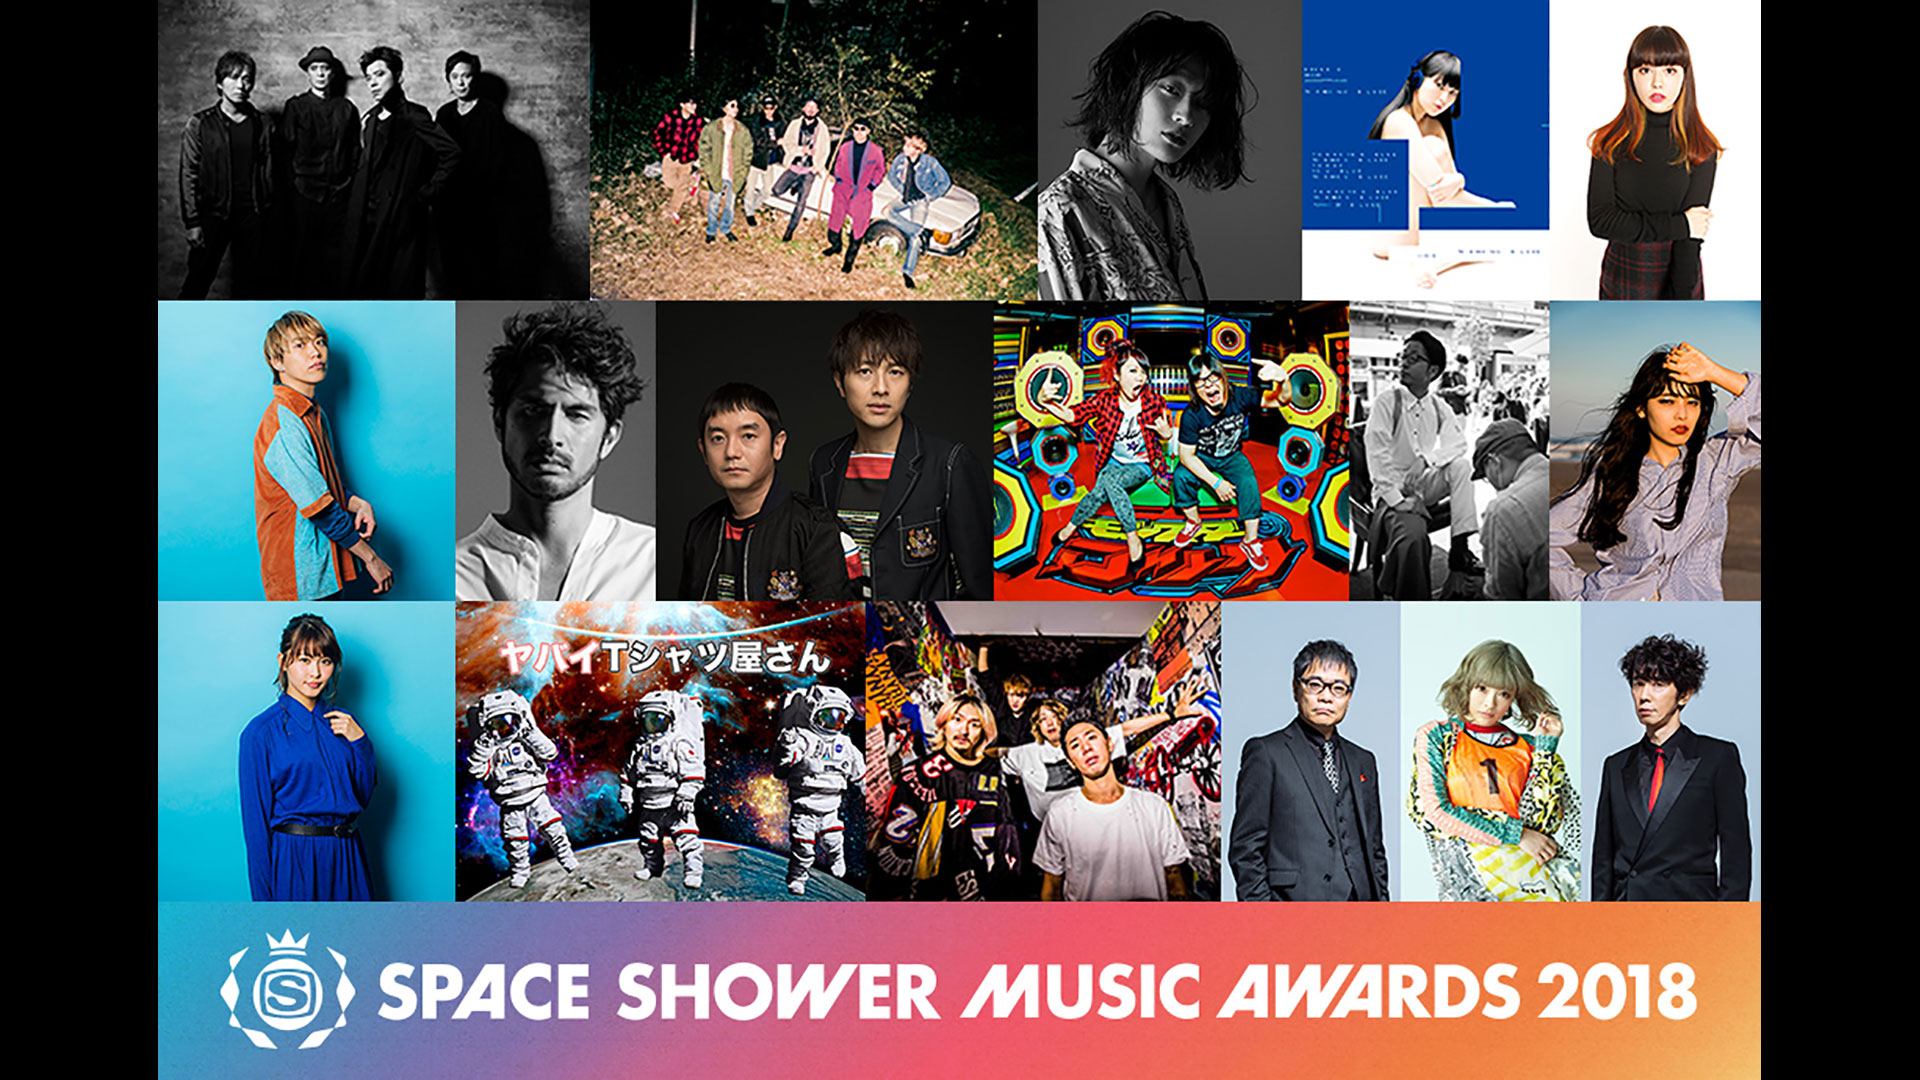 SPACE SHOWER MUSIC AWARDS 2018